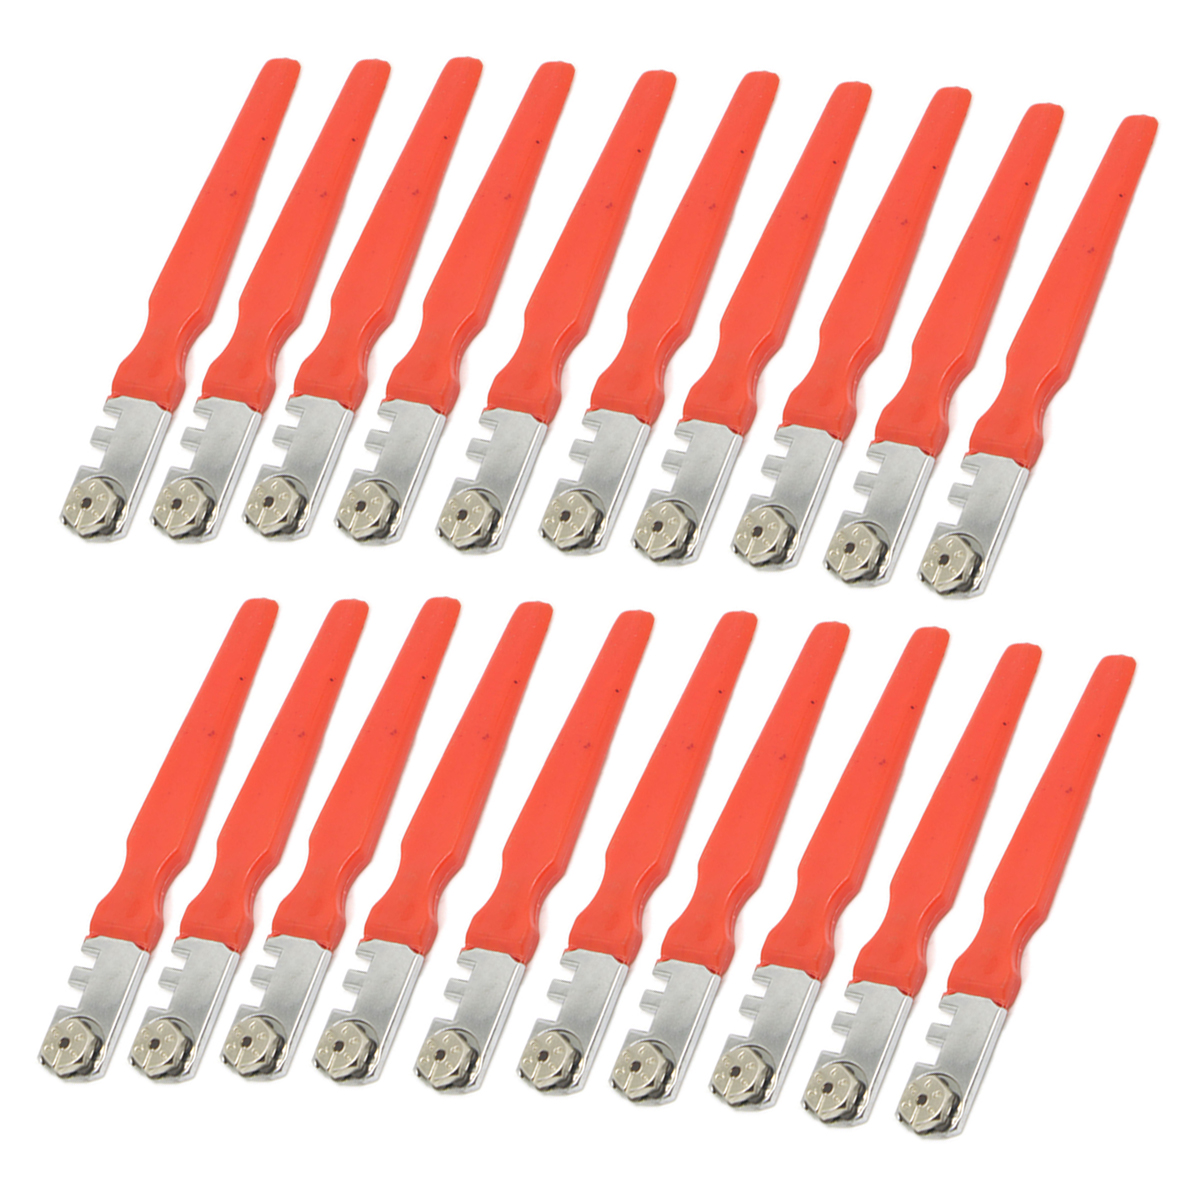 20pcs/lots New 3mm-18mm Tipped Tile Glass Cutters Cutting Craft Glazing Hand Tools